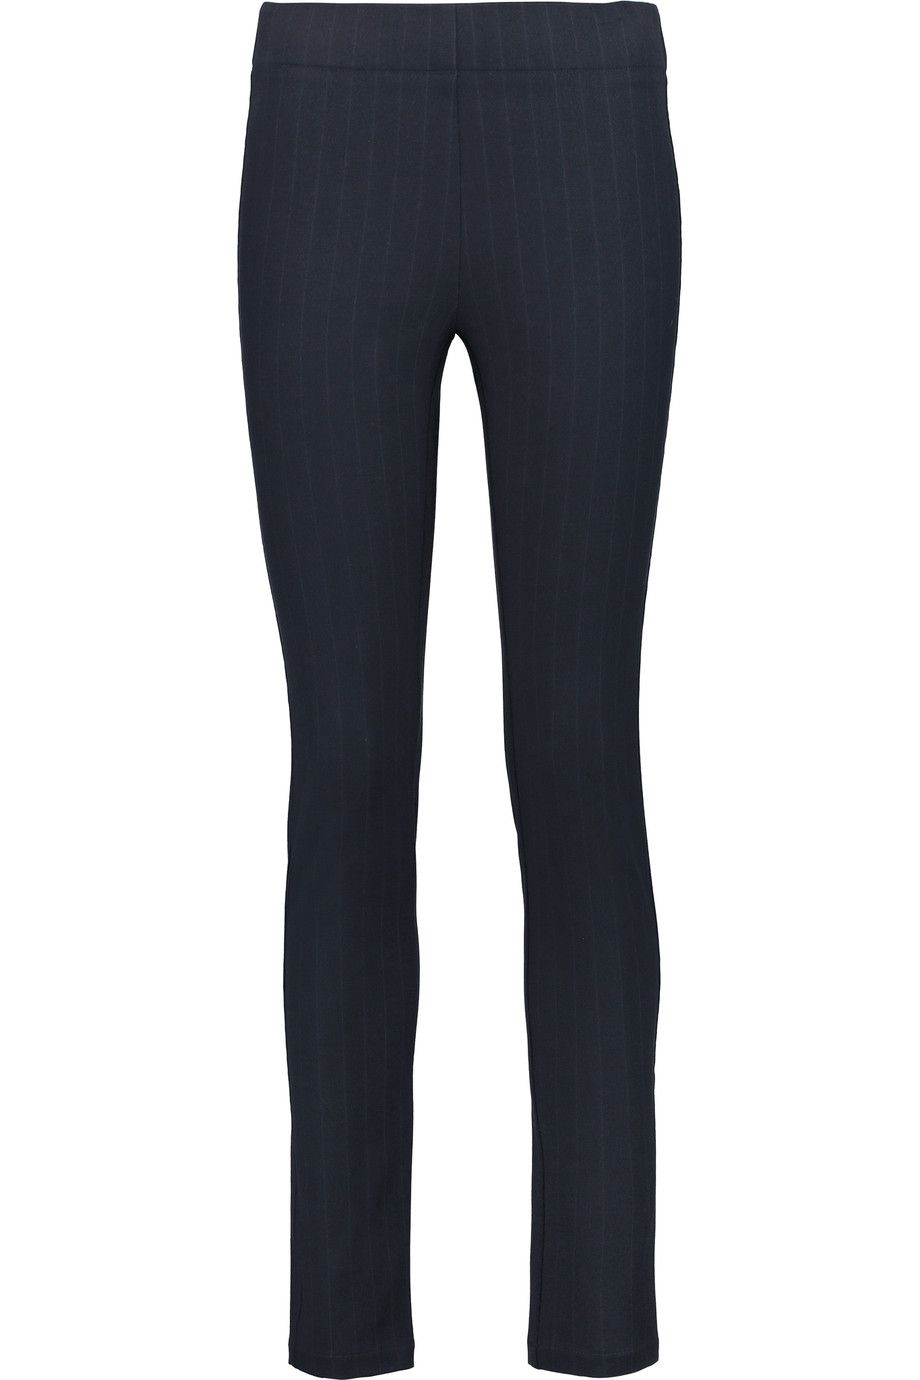 skinny trousers - Blue Joseph